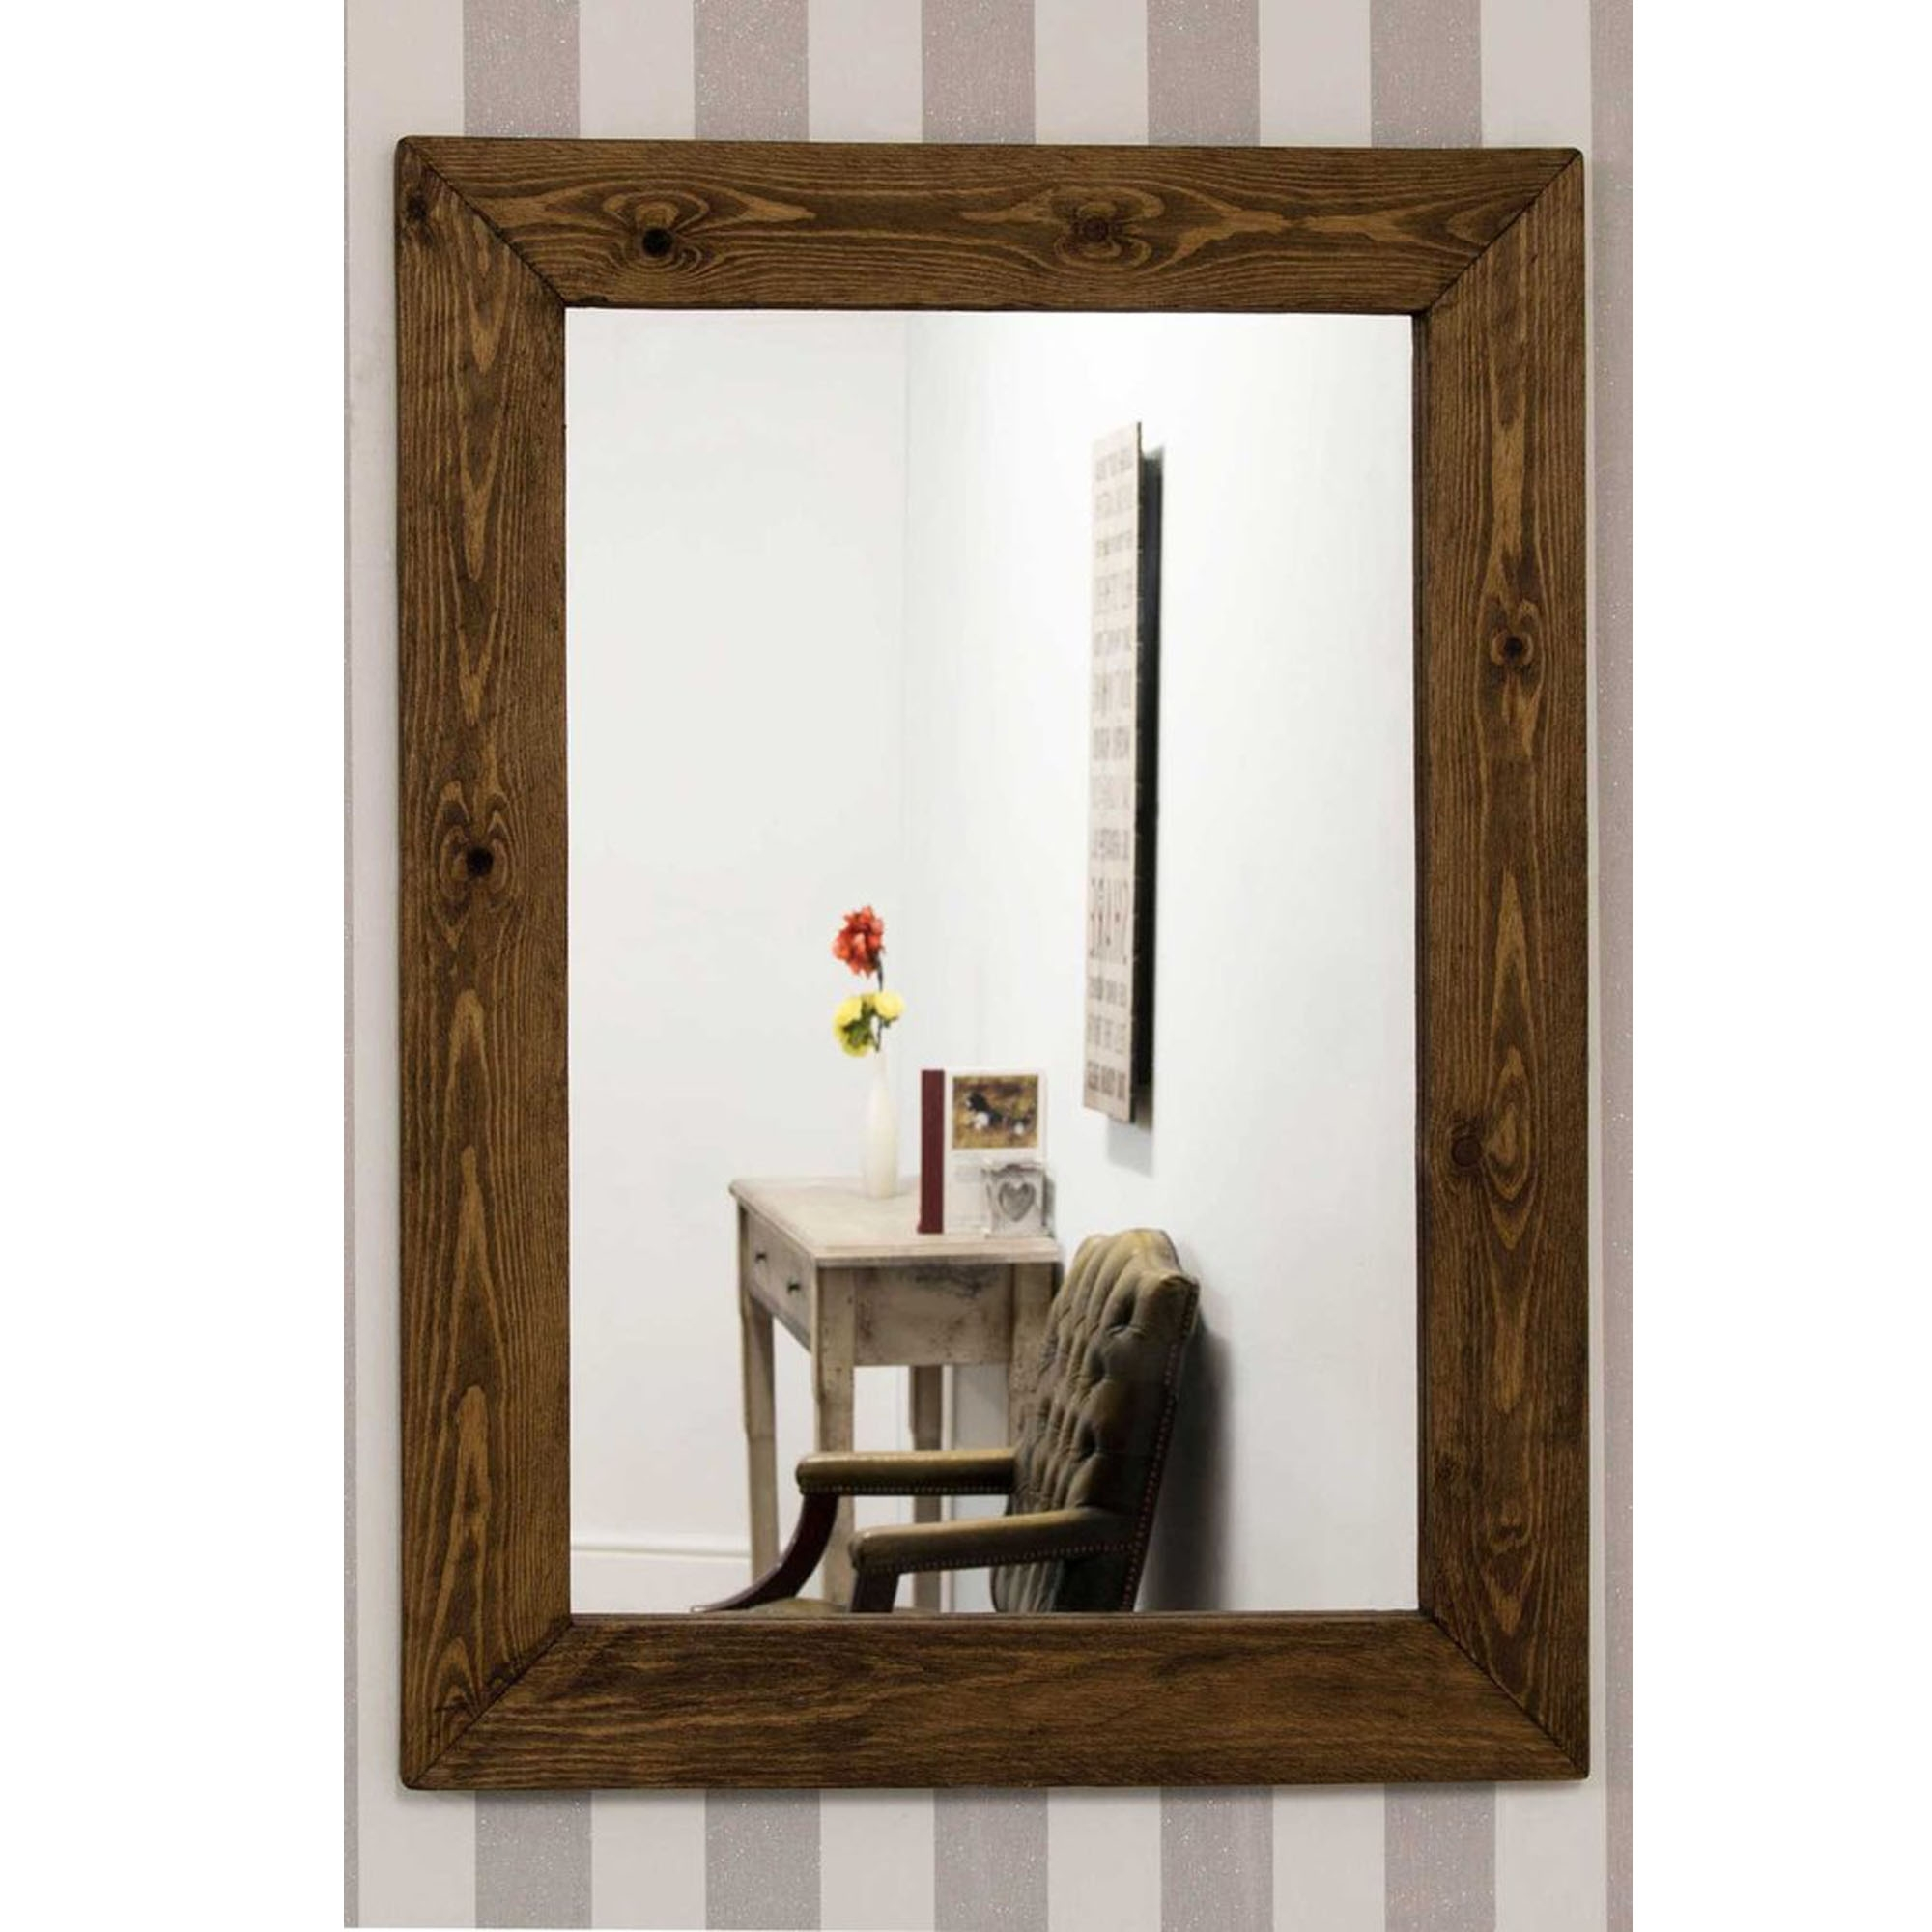 Small Rustic Country House Rectangular Wall Mirror | Home ...